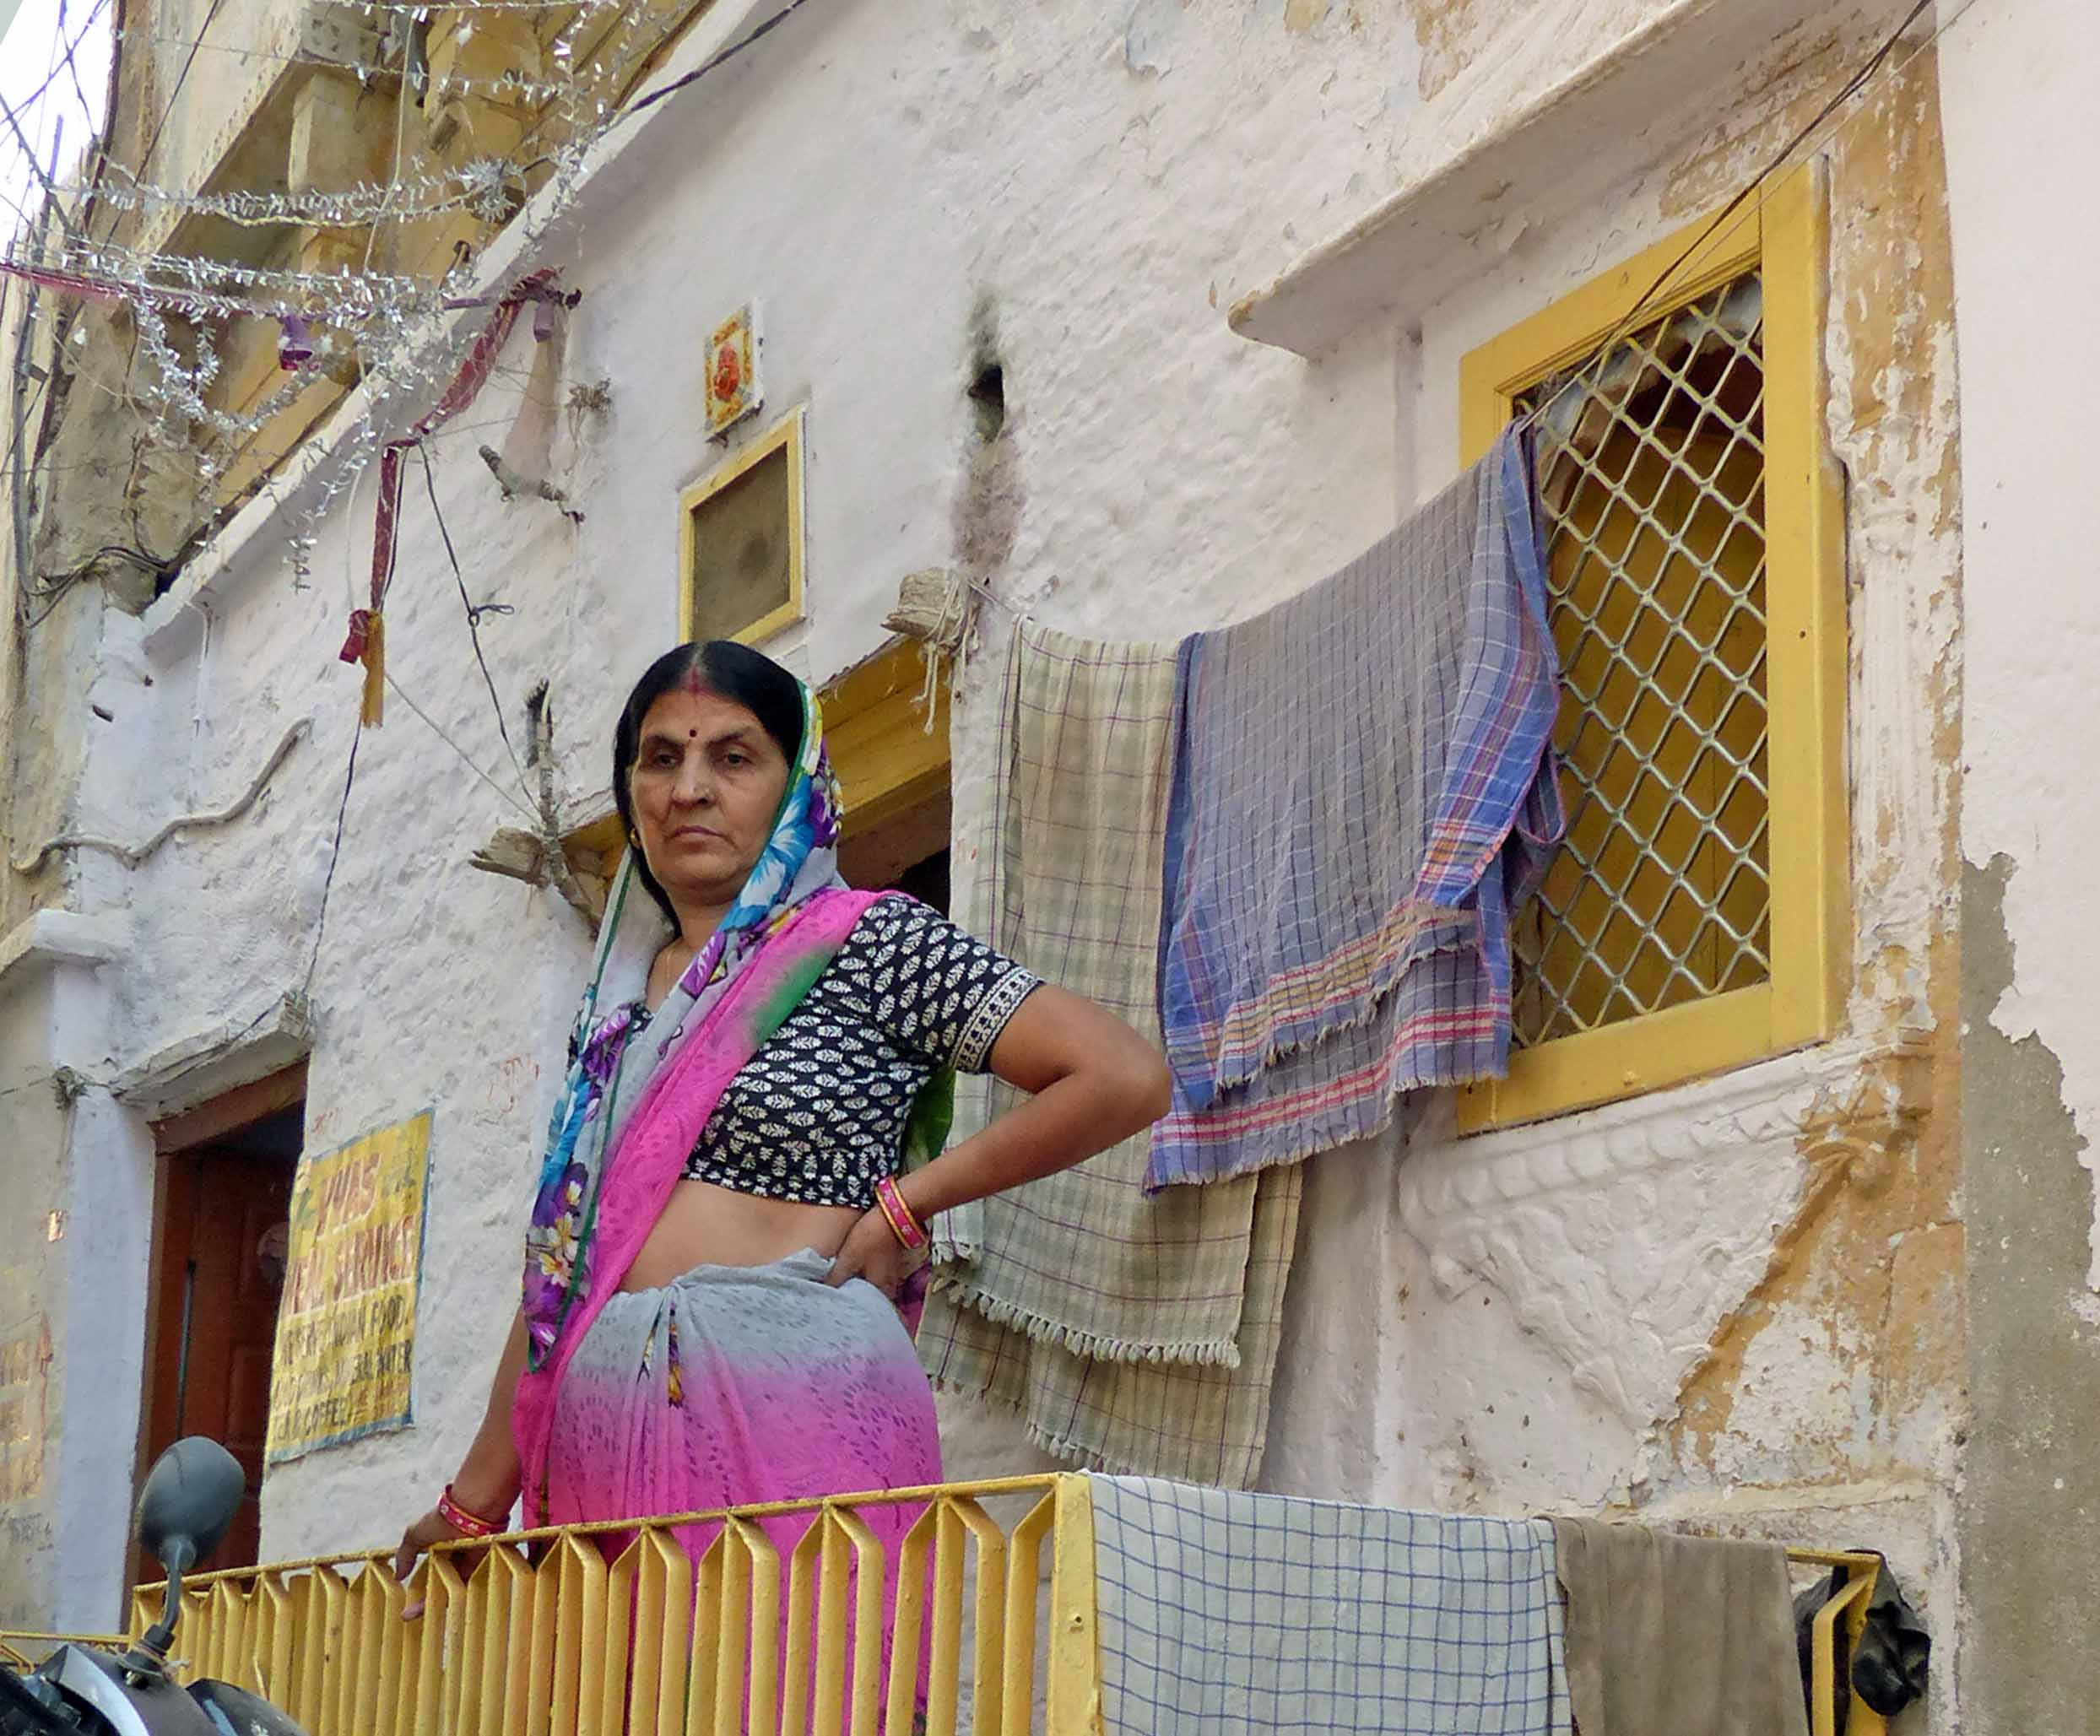 Lady on a balcony with washing drying